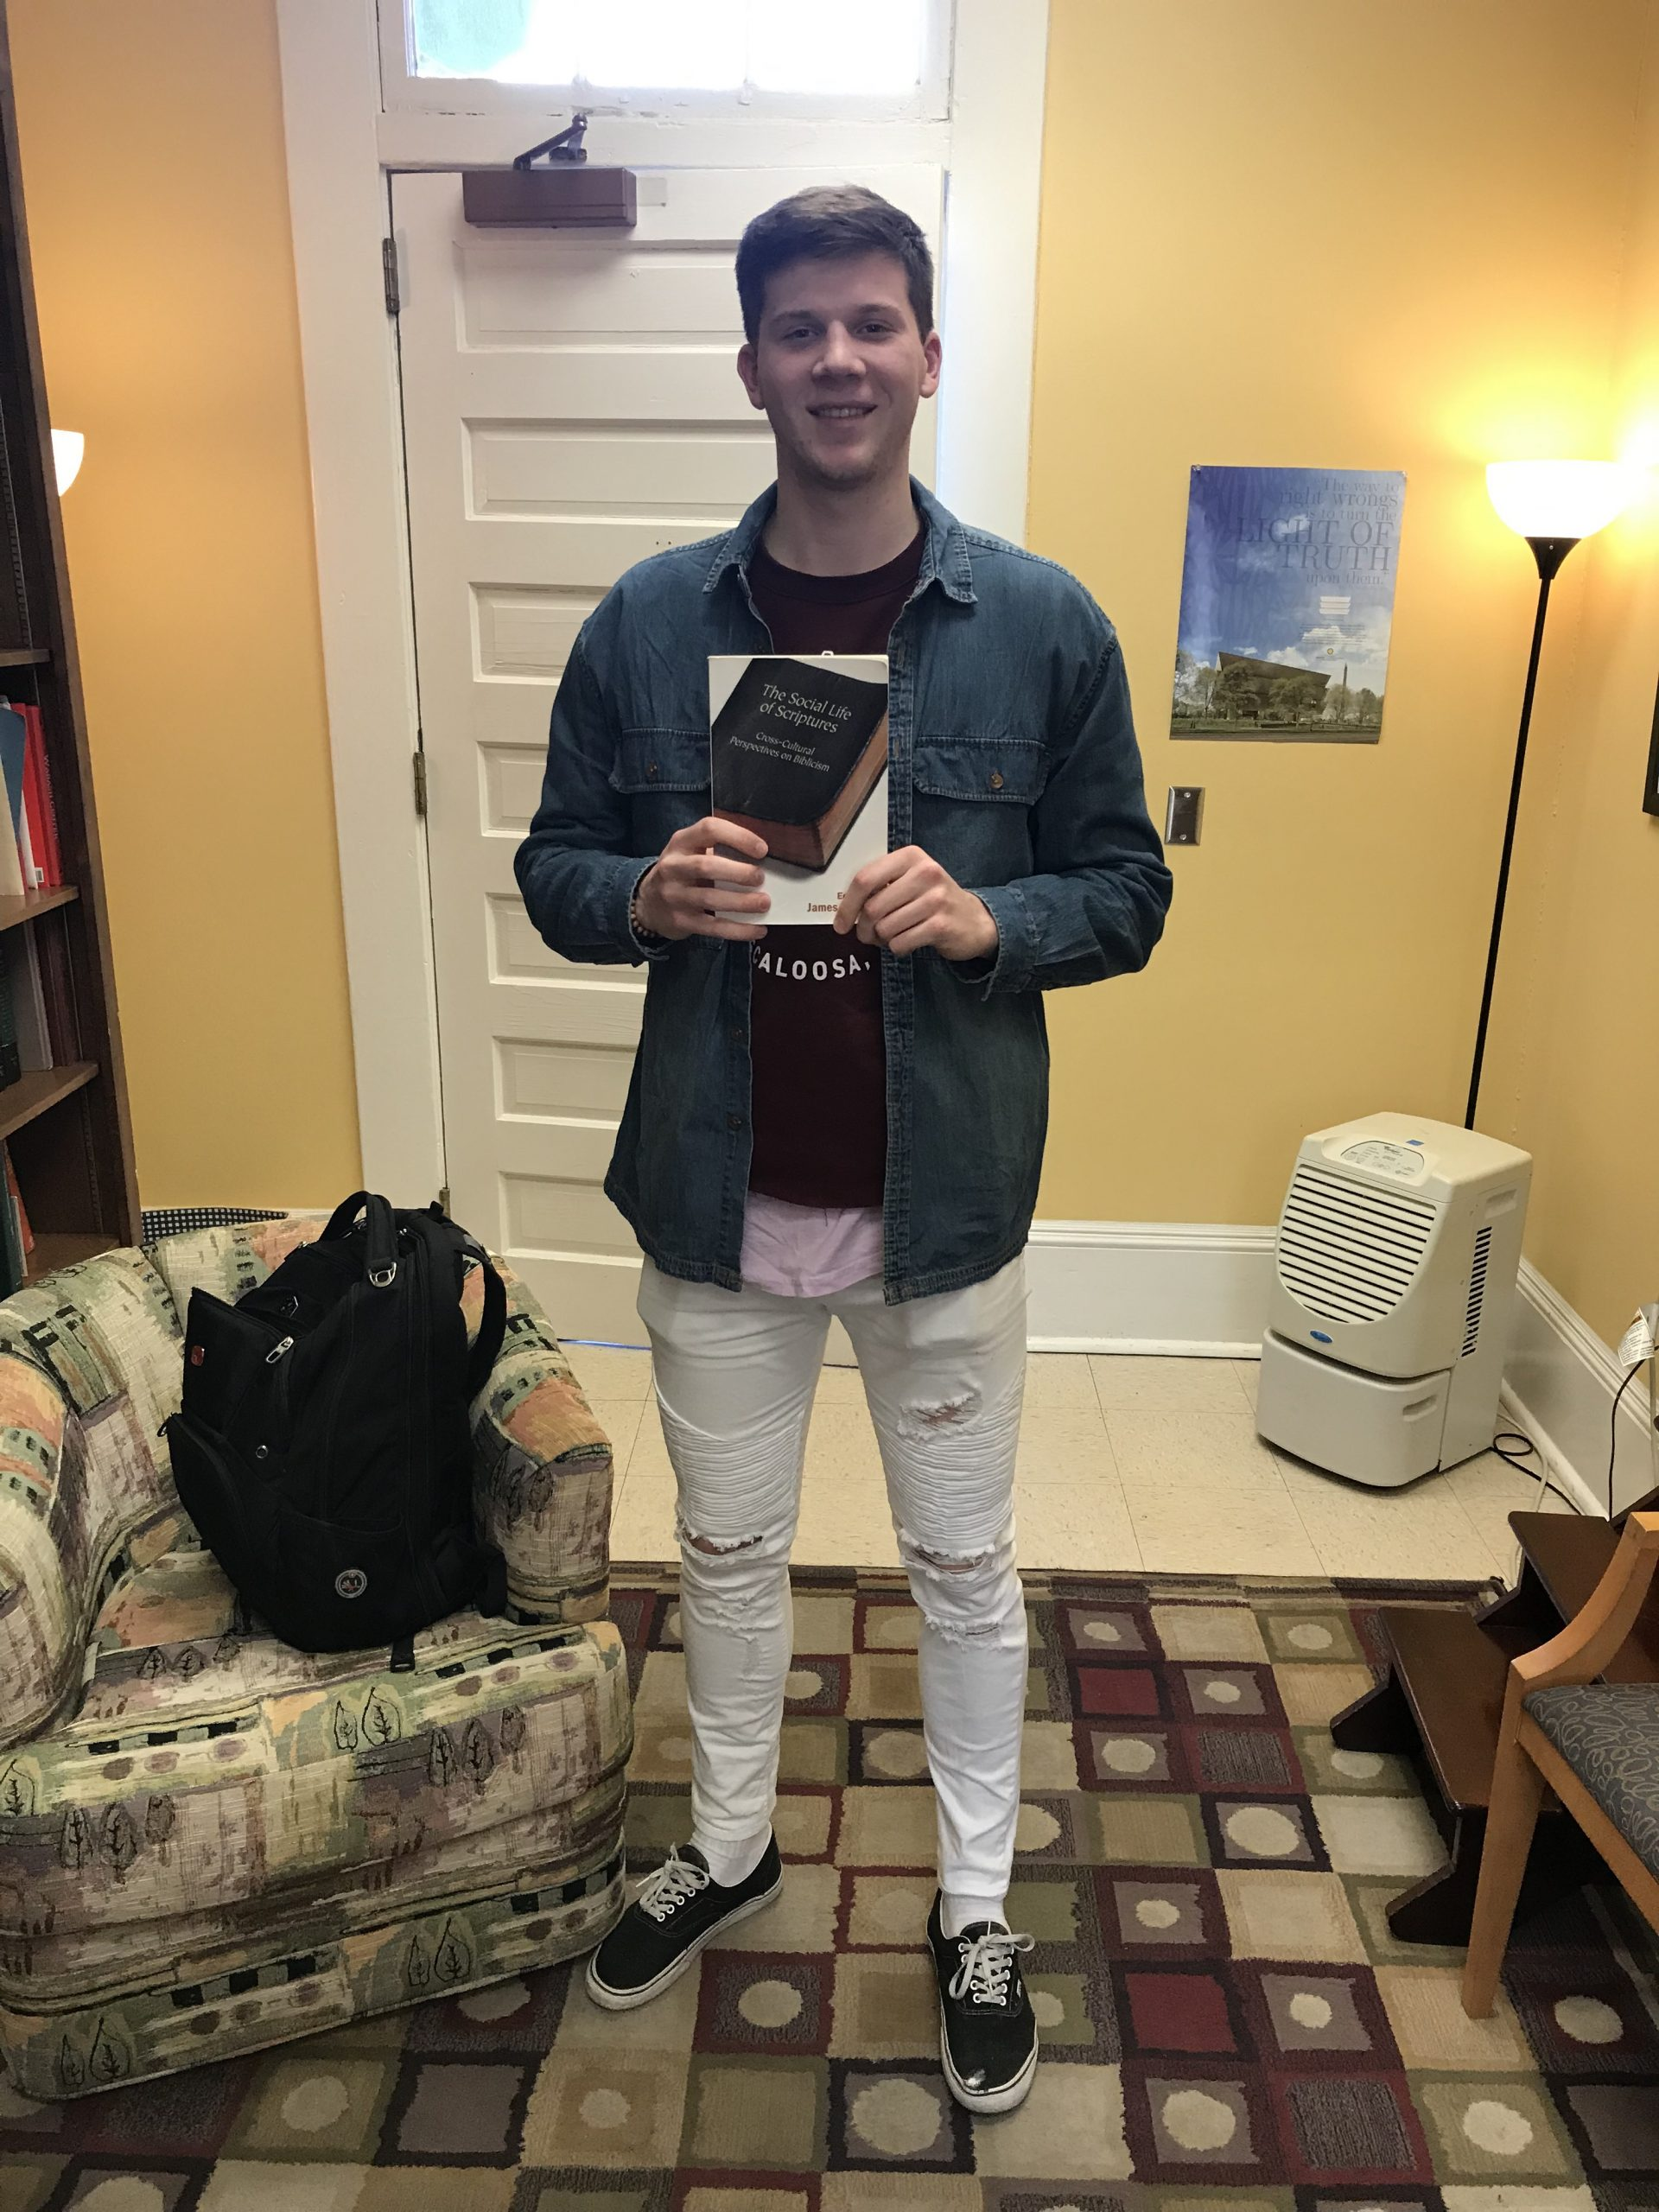 A Picture of Will Watson holding James S. Bielo's book, The Social Life of Scriptures.